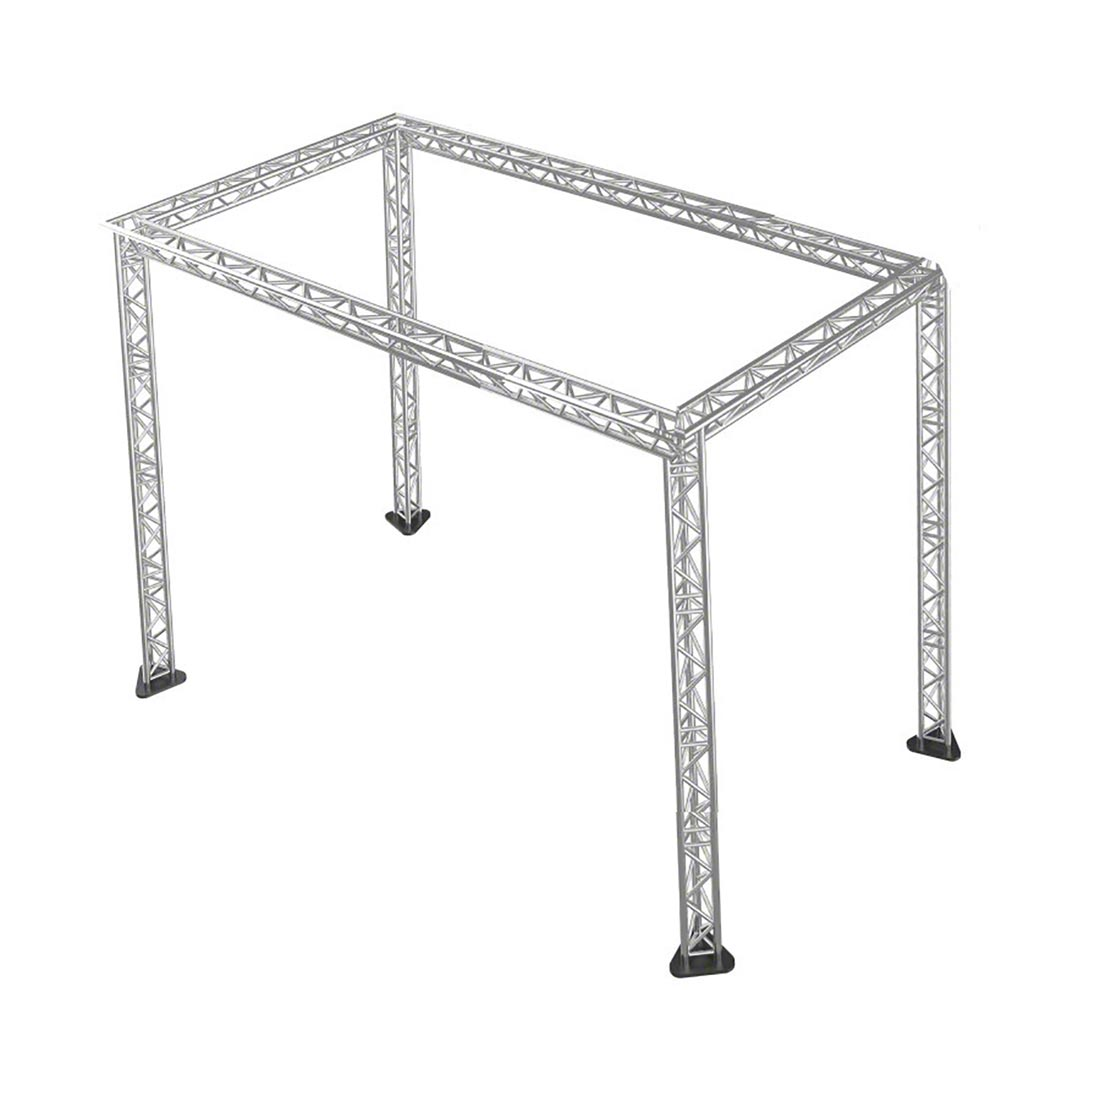 Square Truss Kits